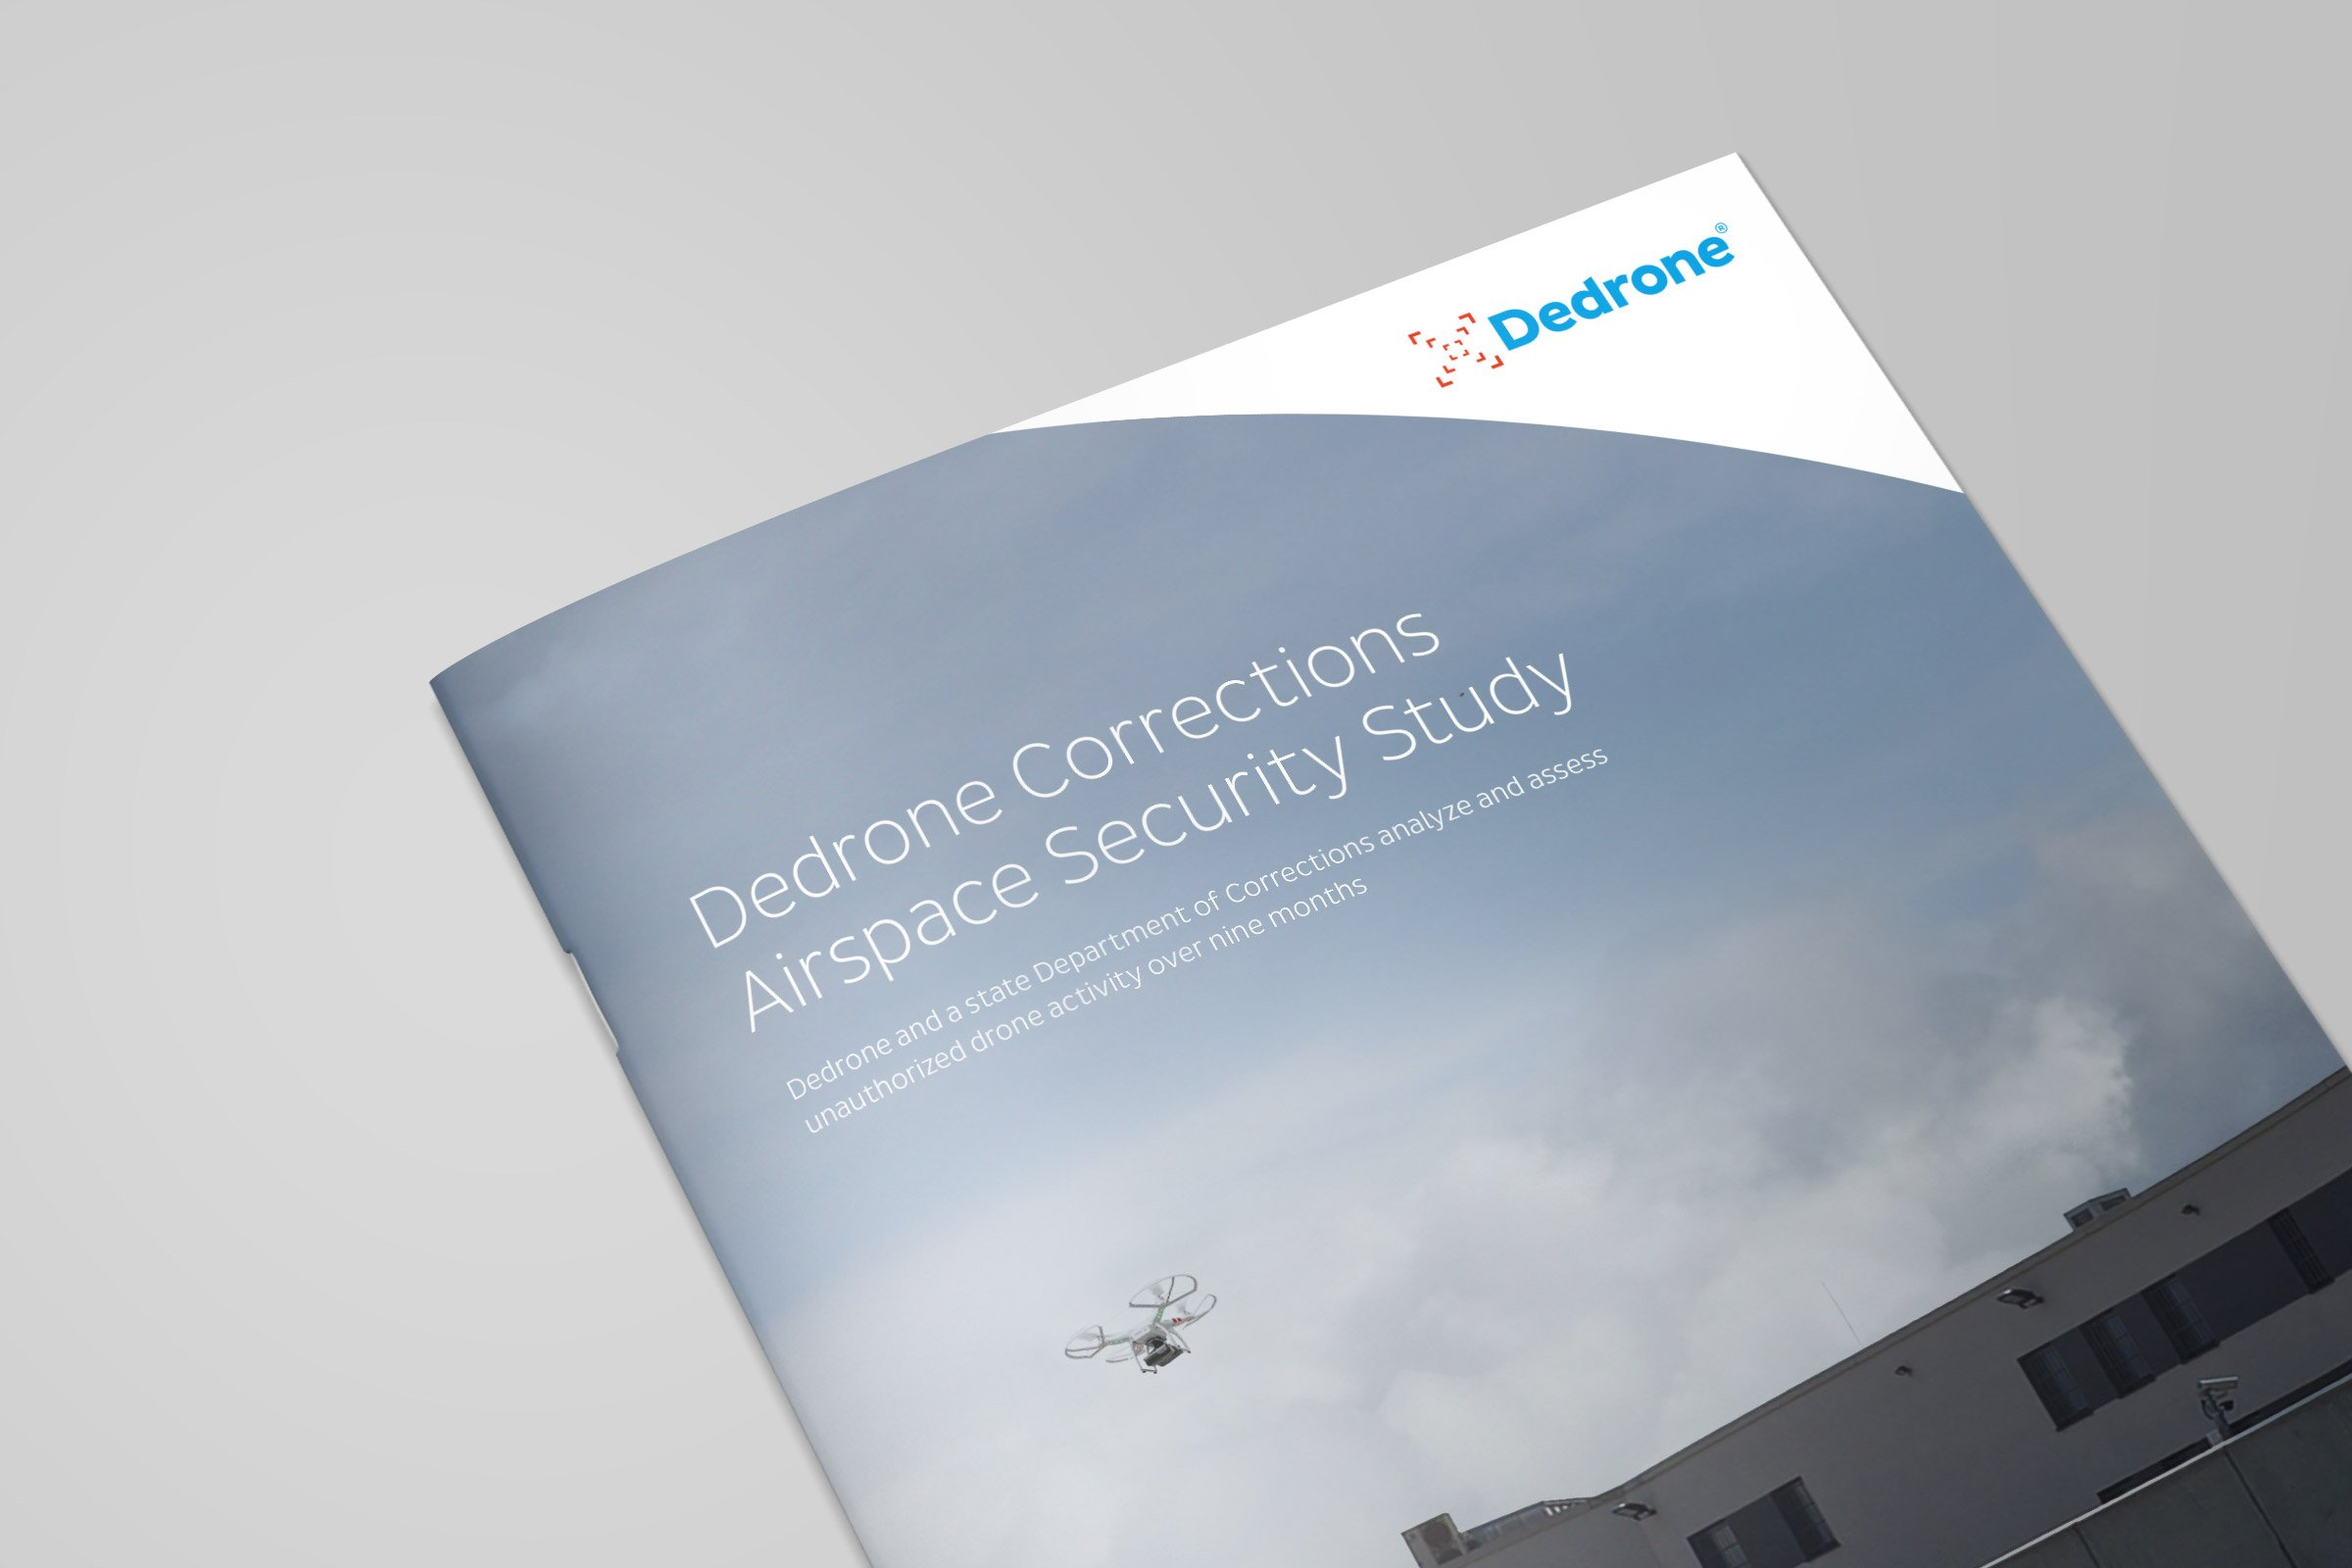 dedrone-whitepaper-cover-big-corrections-study-1